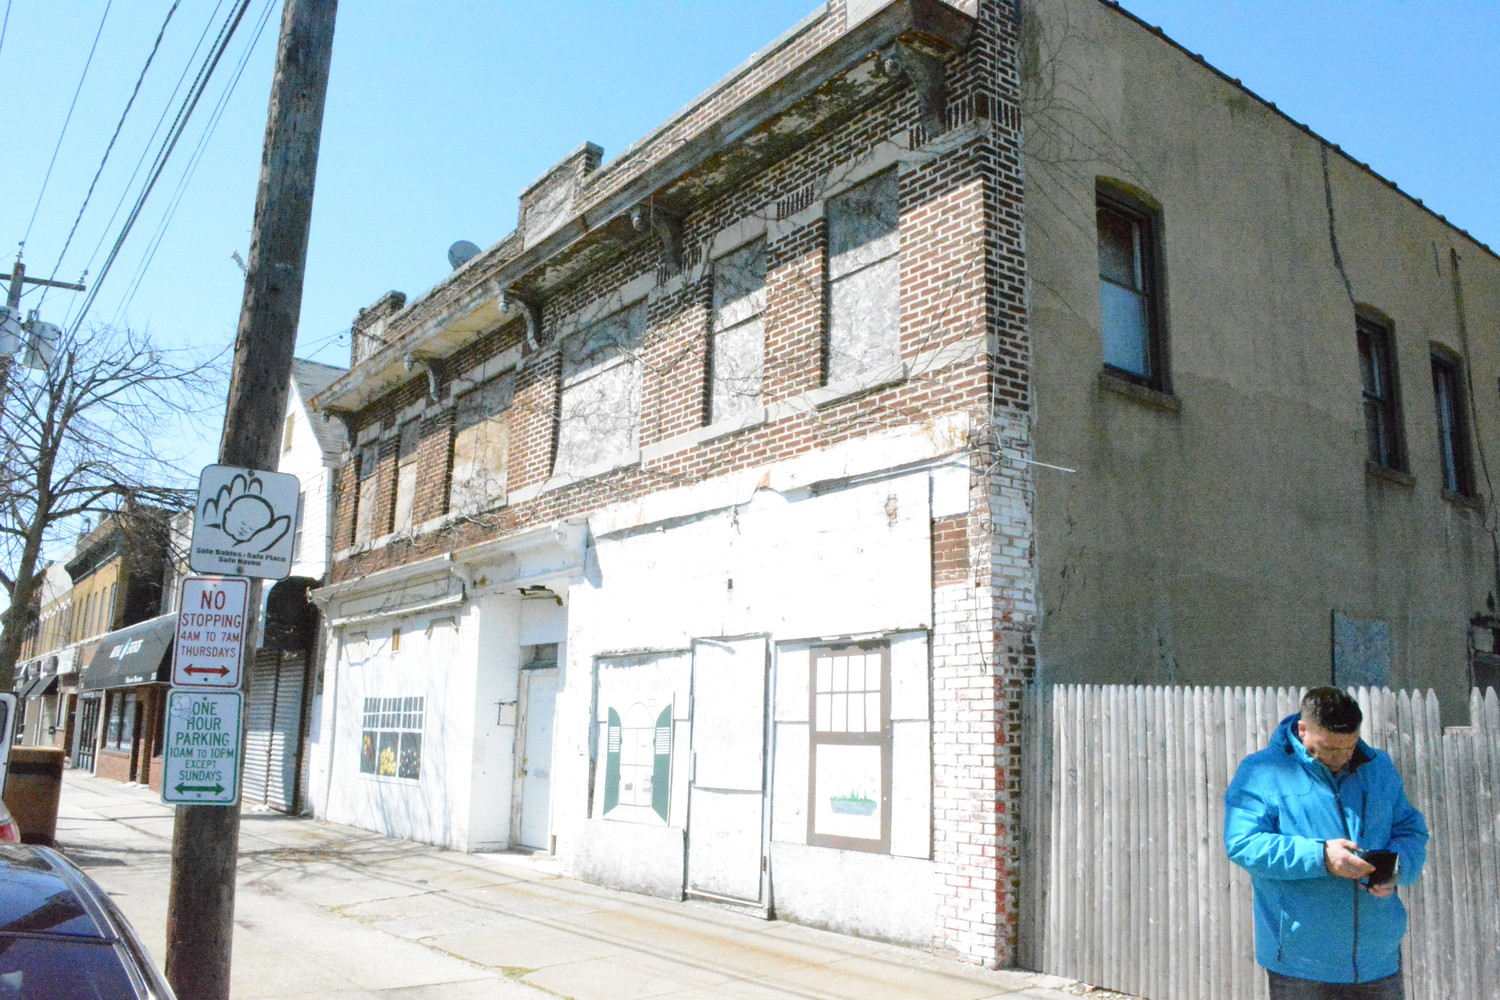 Town of Hempstead officials said they hope to reduce the number of vacant buildings along Grand Avenue through a rezoning effort.